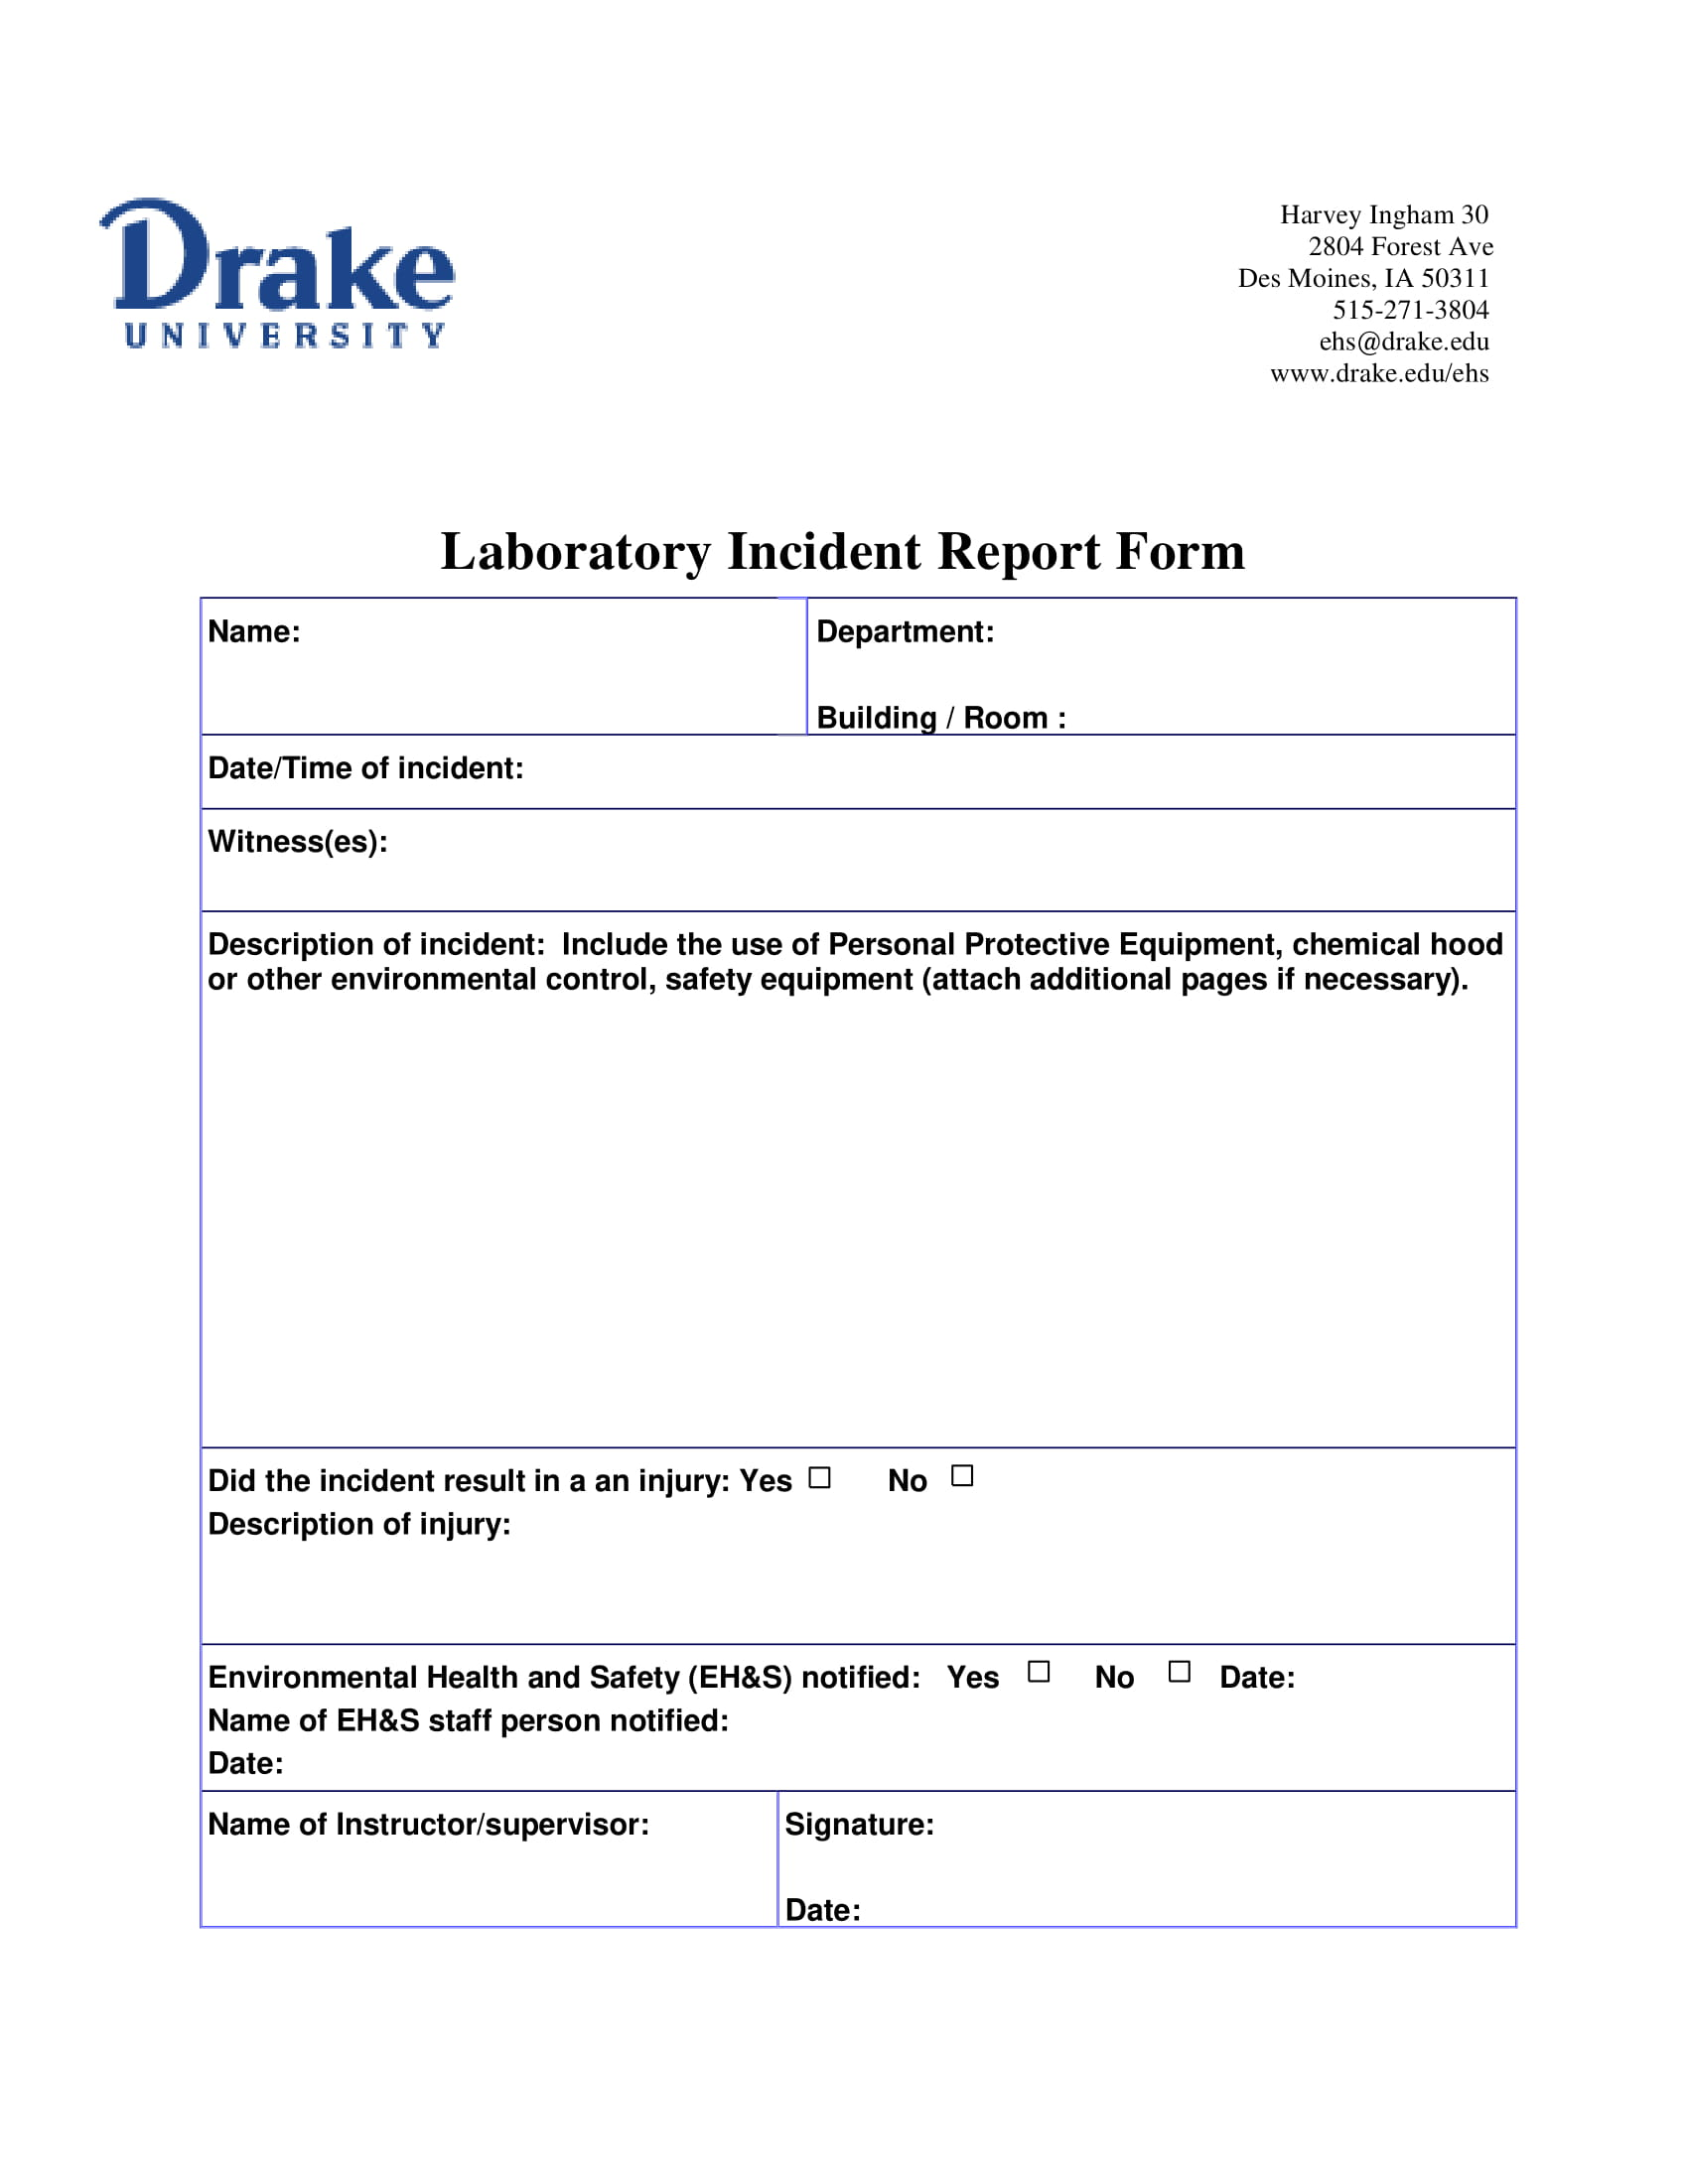 week 2 lab reporting form Sci 207 week 3 lab 3 biodiversity $1500 complete table 1 and answer post lab questions 1 through 3 in complete sentences on the week three lab reporting form.